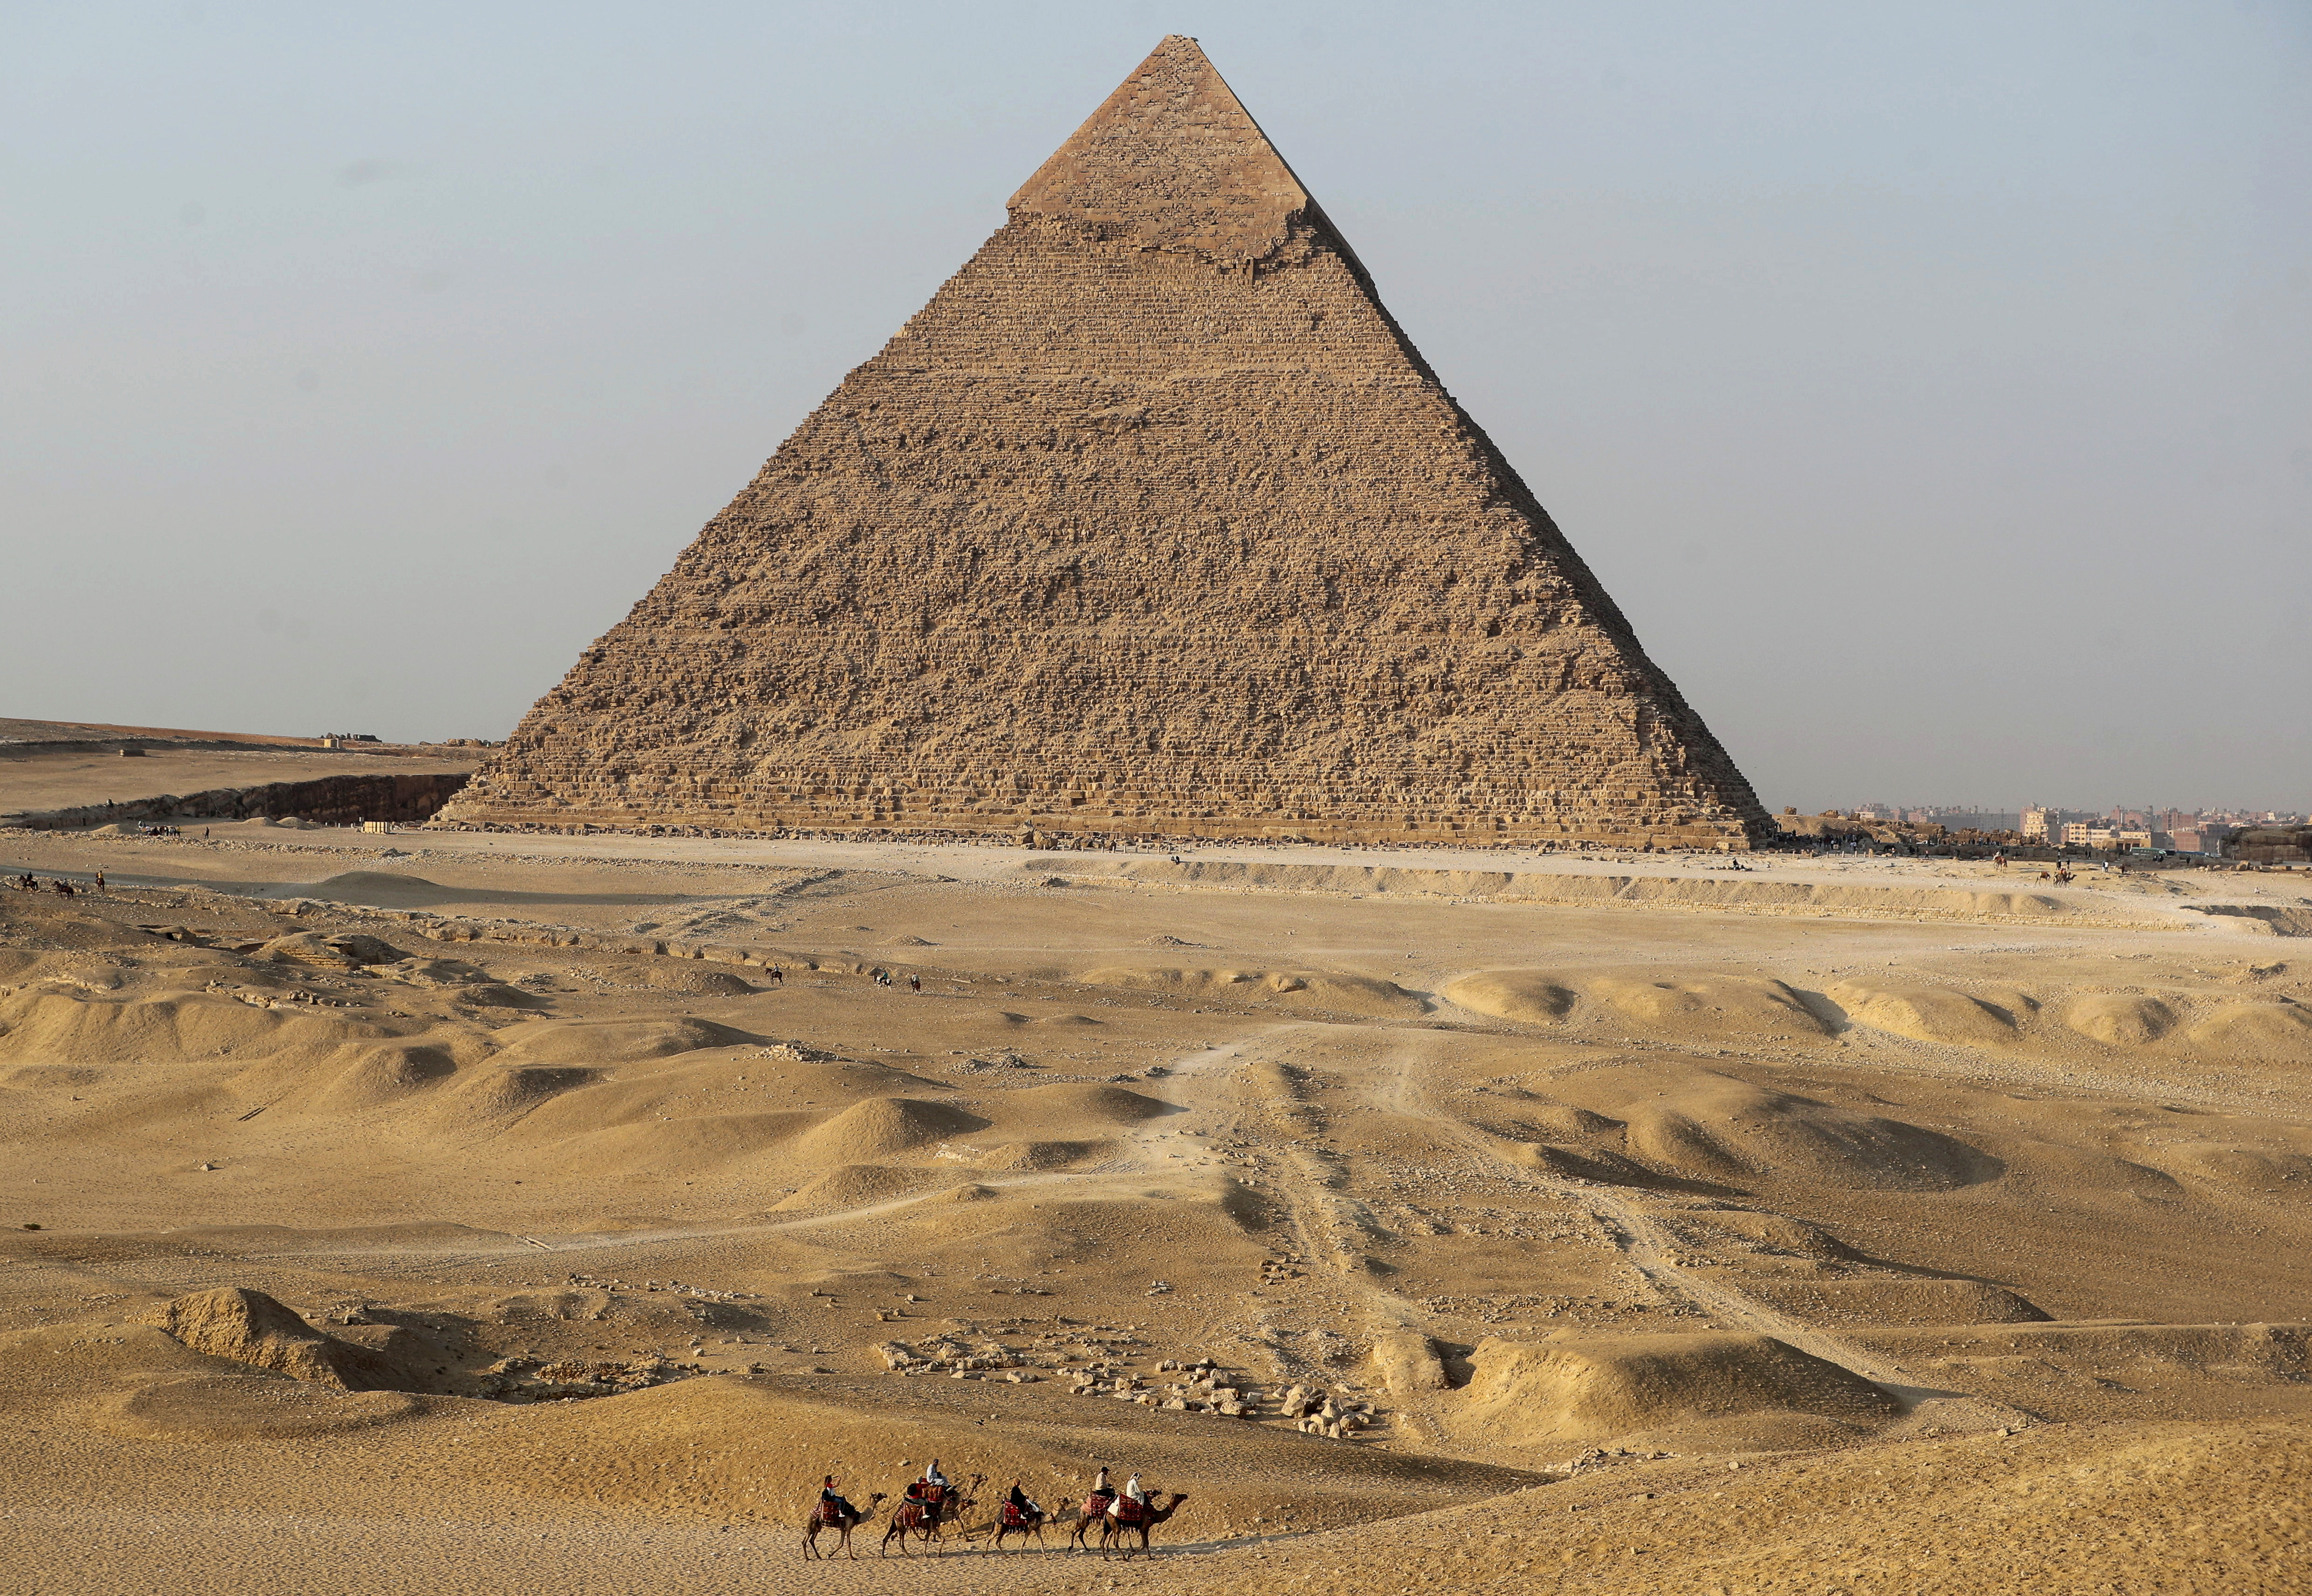 Egypt's hotels back to full capacity, tourism official says